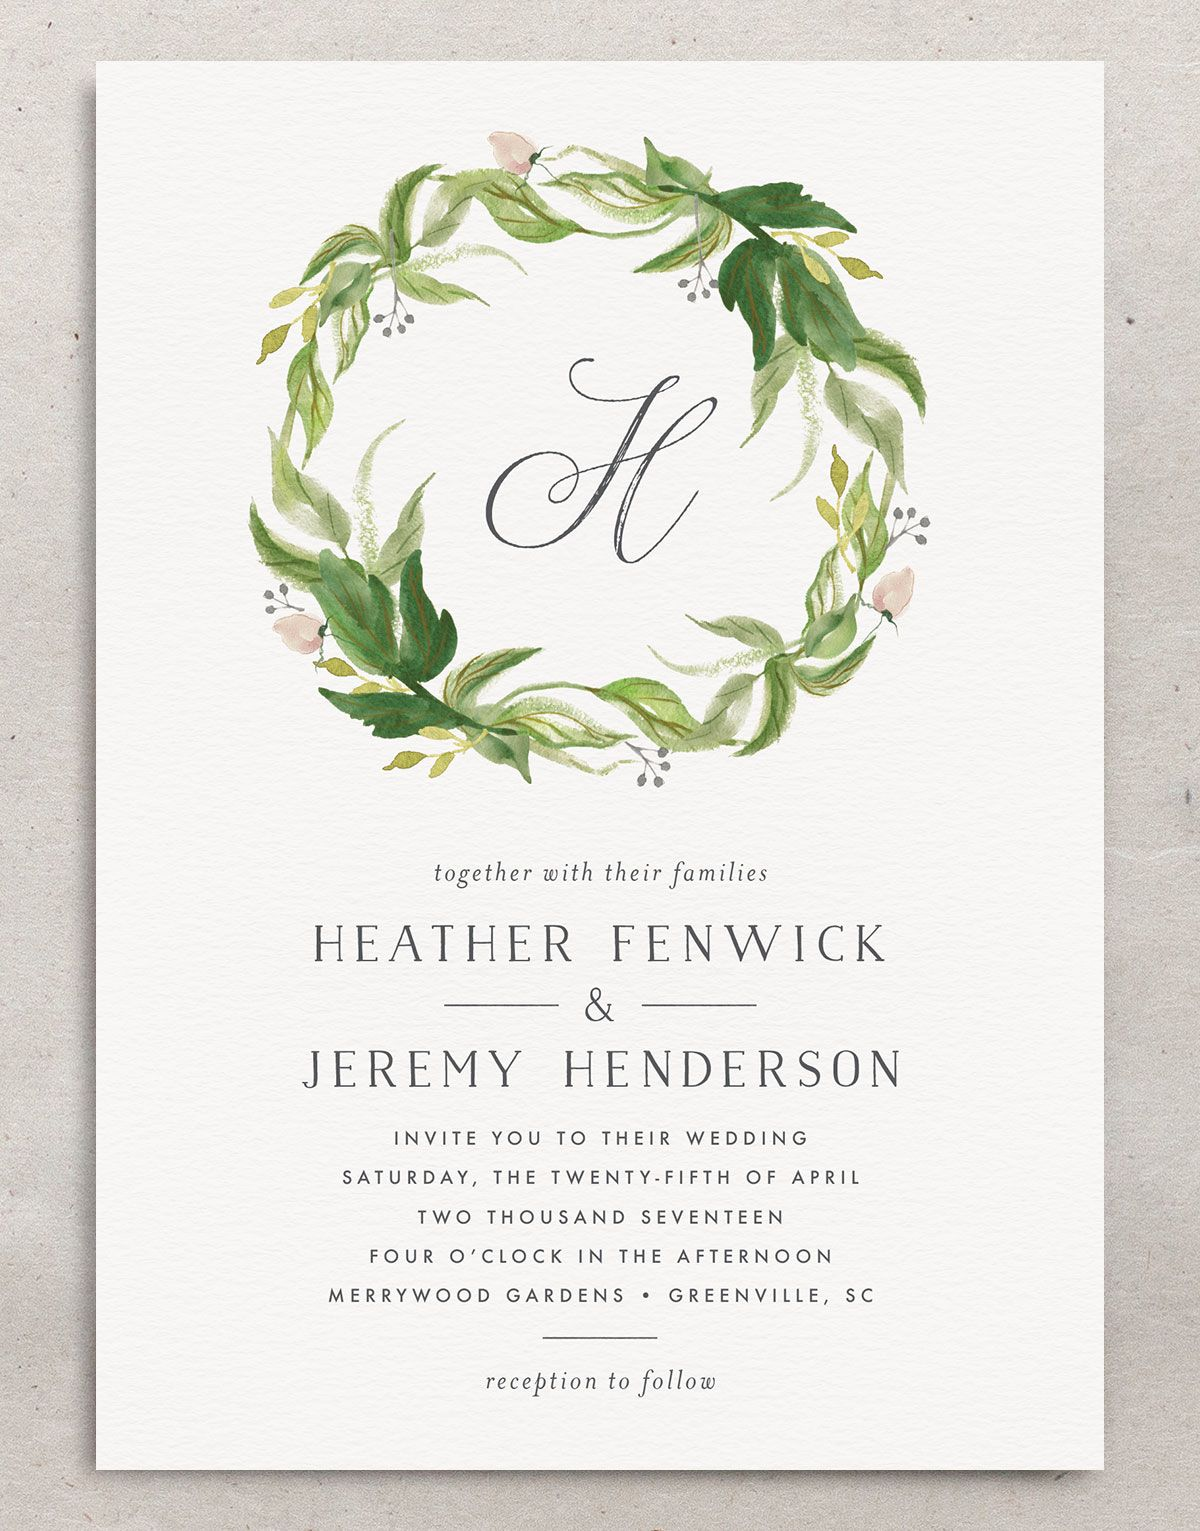 leafy wreath wedding invites in green